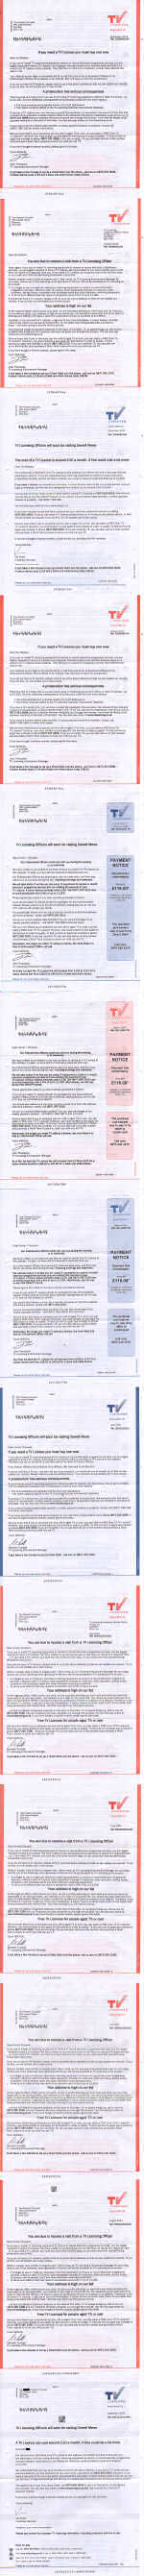 Picture of the letters from Tv Licensing